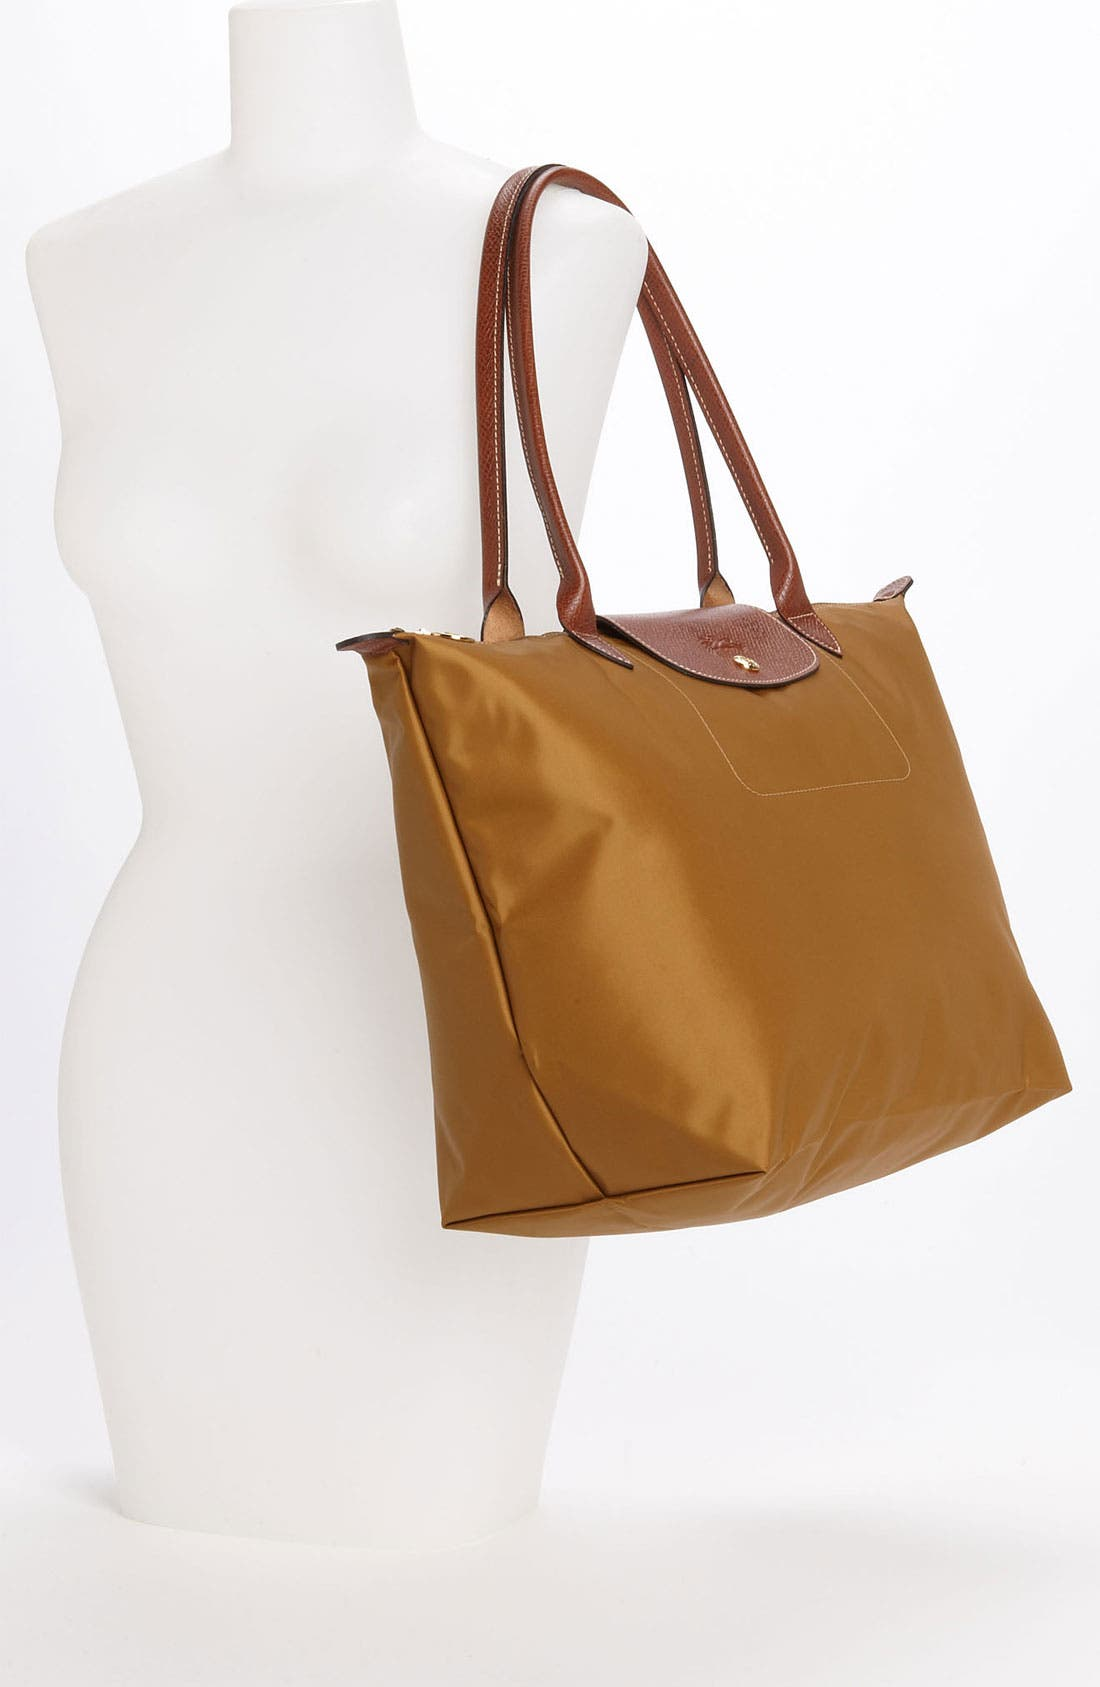 'Large Le Pliage' Nylon Tote,                             Alternate thumbnail 2, color,                             250